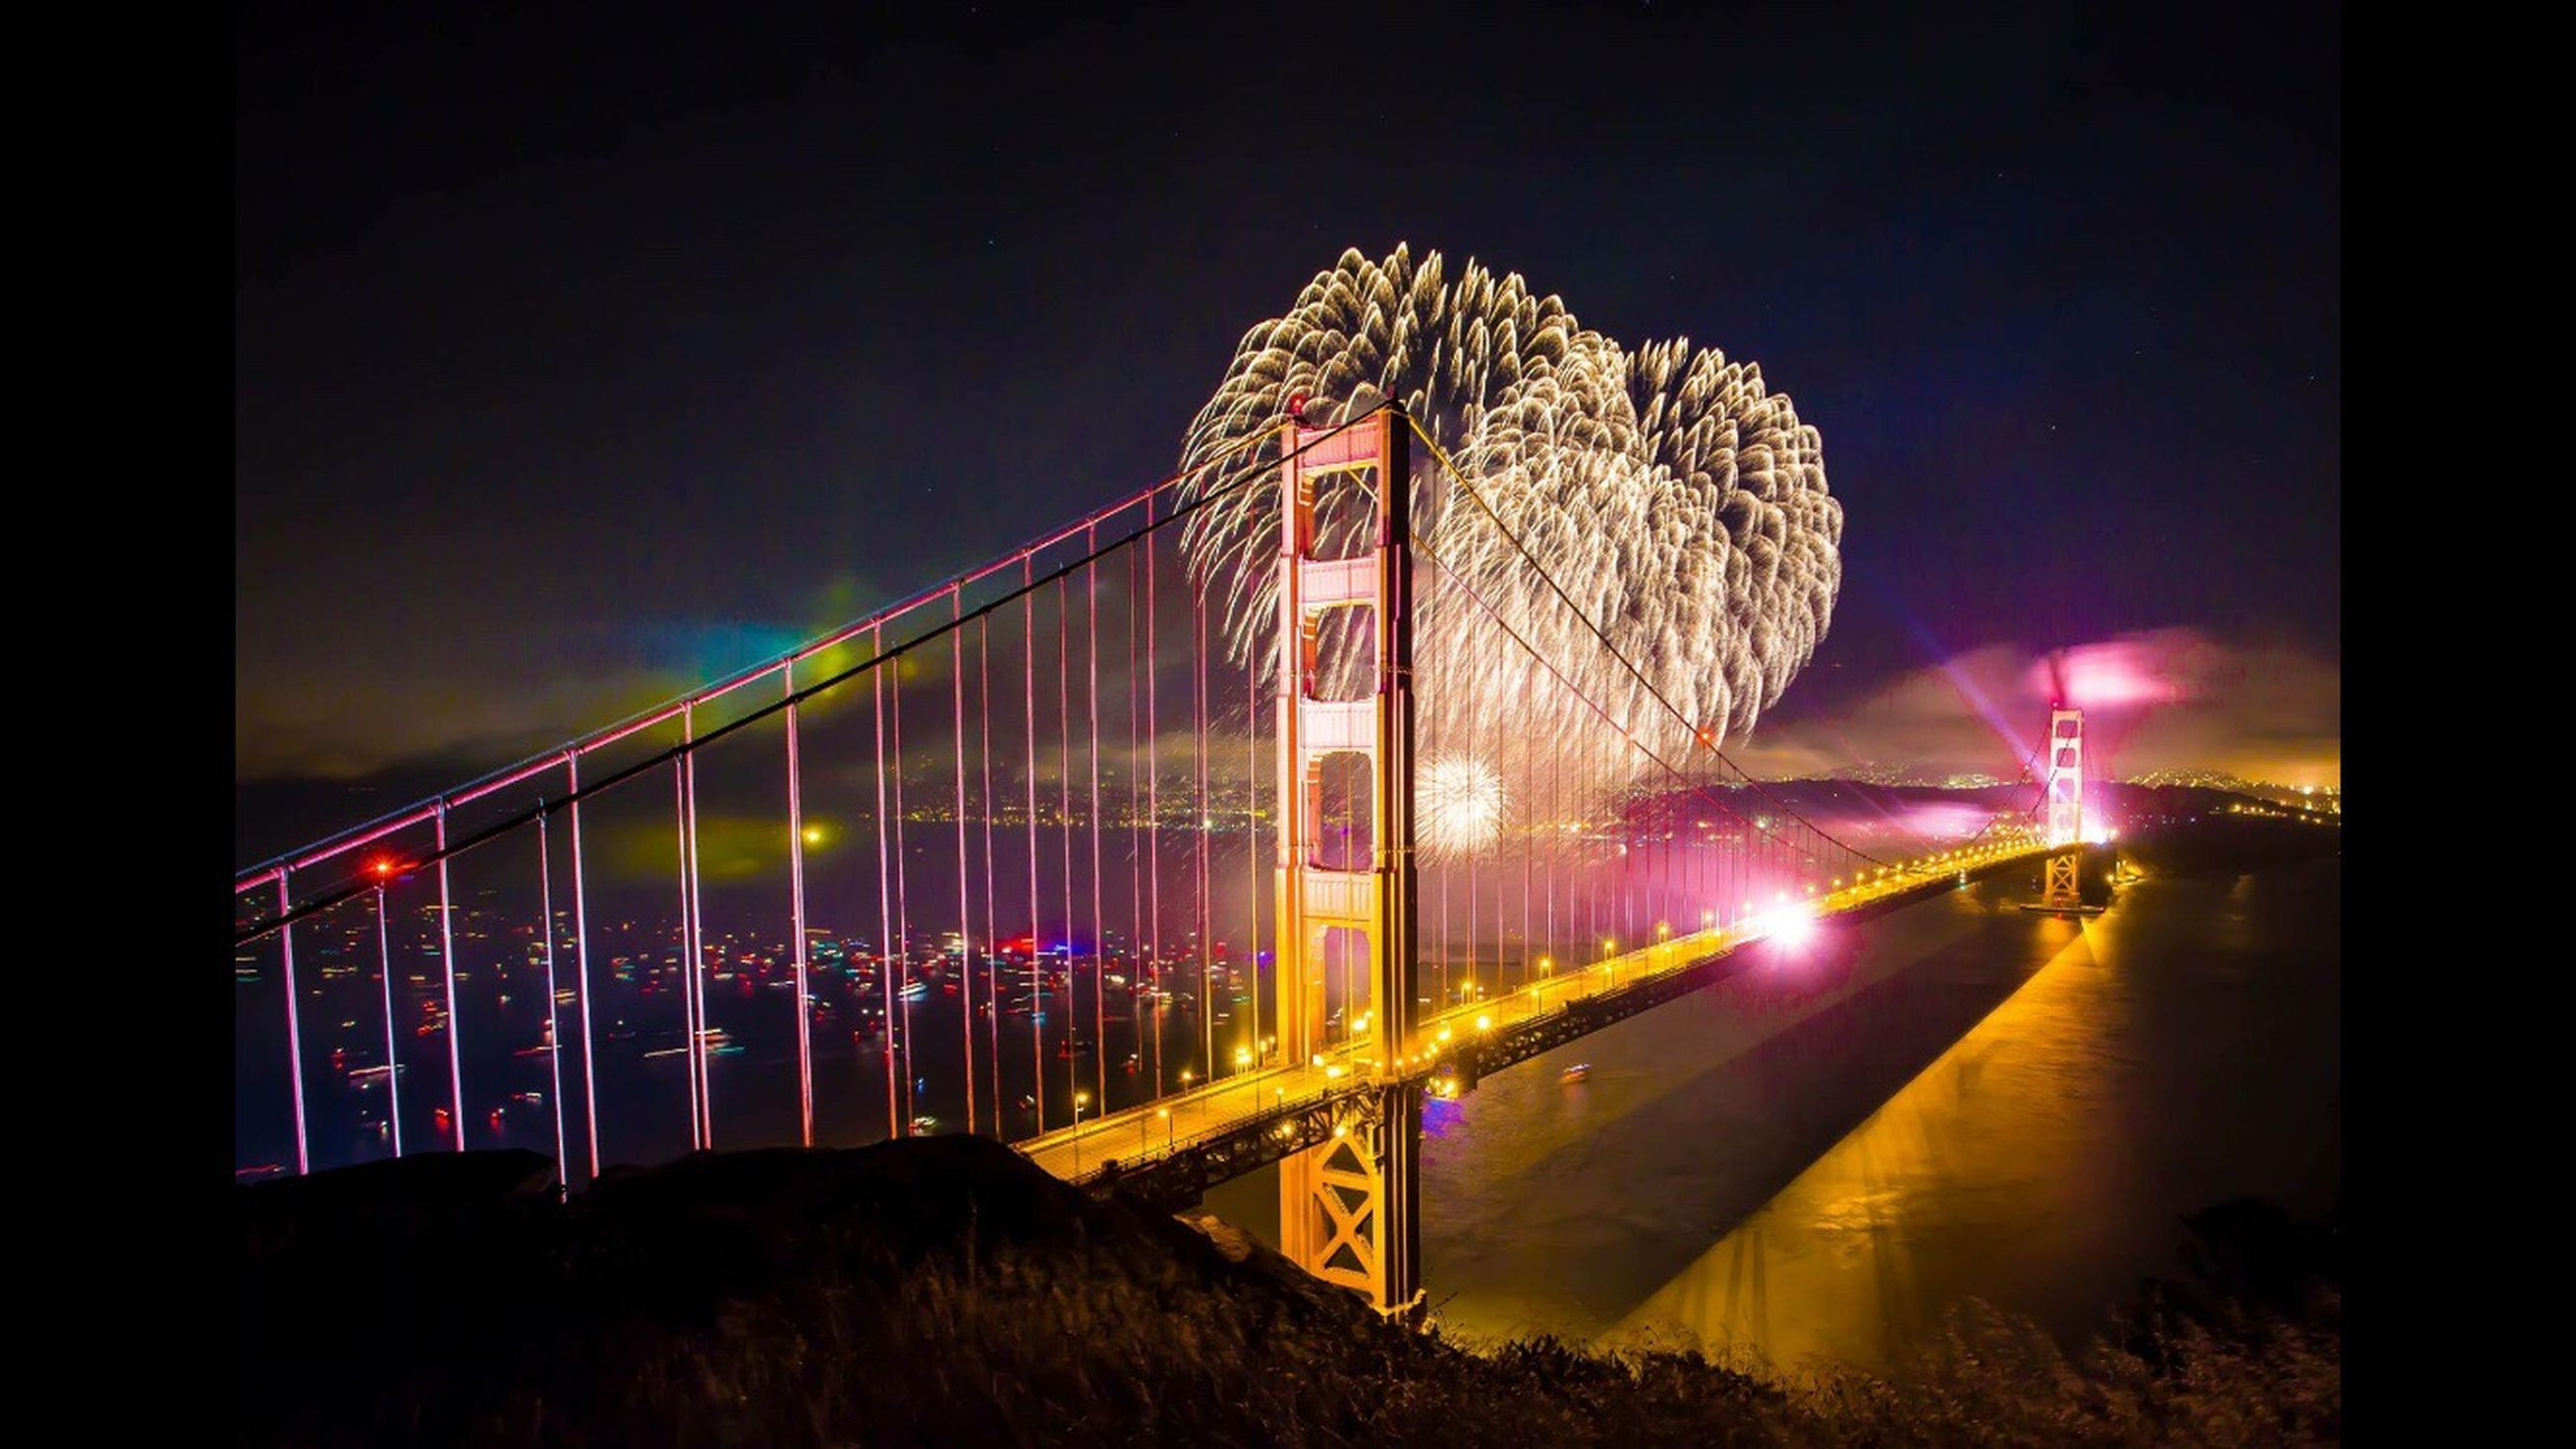 night, illuminated, built structure, architecture, long exposure, connection, clear sky, sky, arts culture and entertainment, bridge - man made structure, suspension bridge, motion, travel destinations, low angle view, outdoors, engineering, water, famous place, building exterior, red